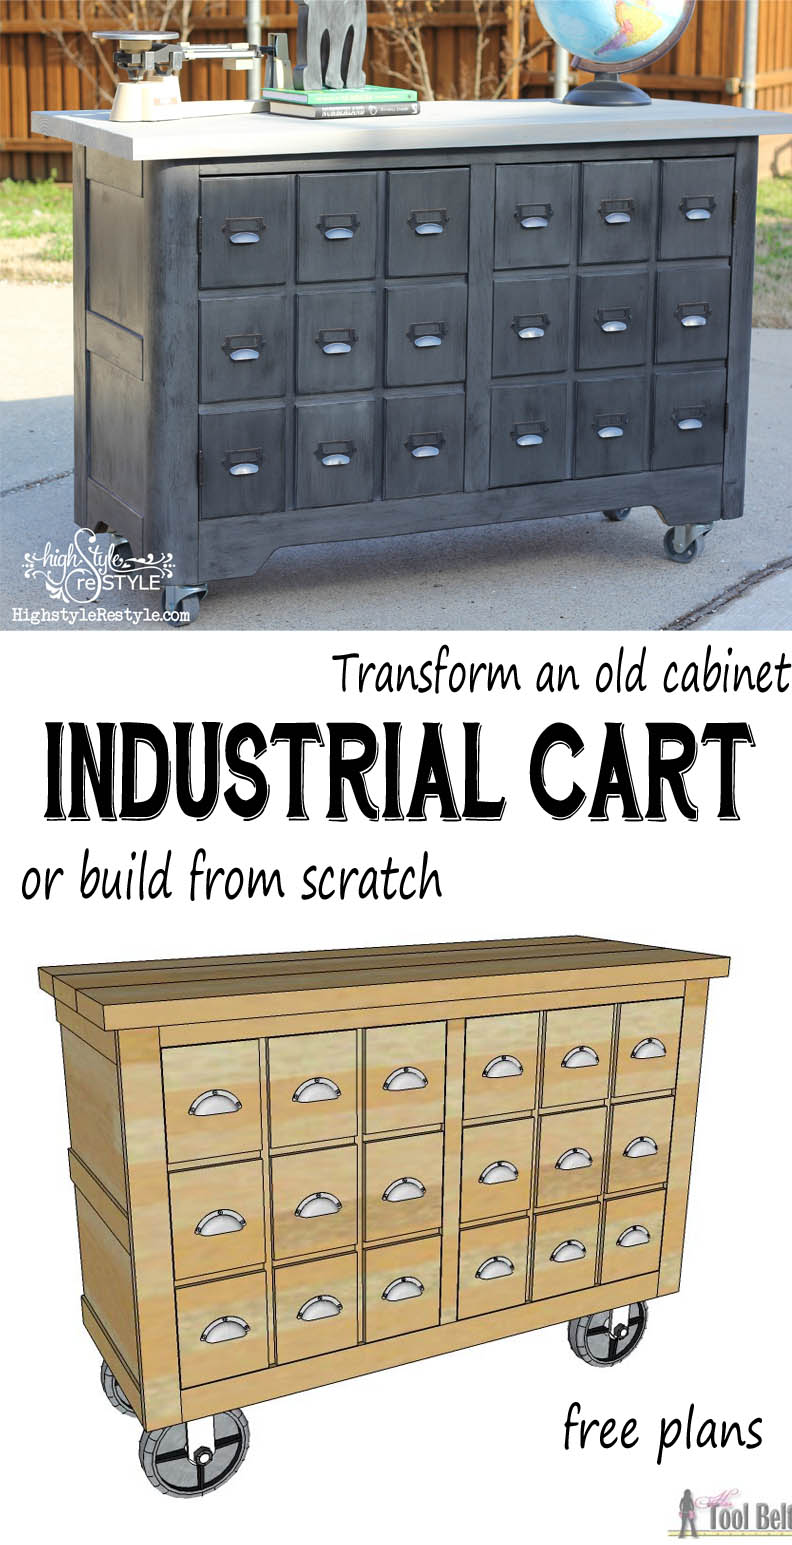 Convert An Old Cabinet Into An Industrial Cart   Apothecary Cabinet Or  Build One From Scratch